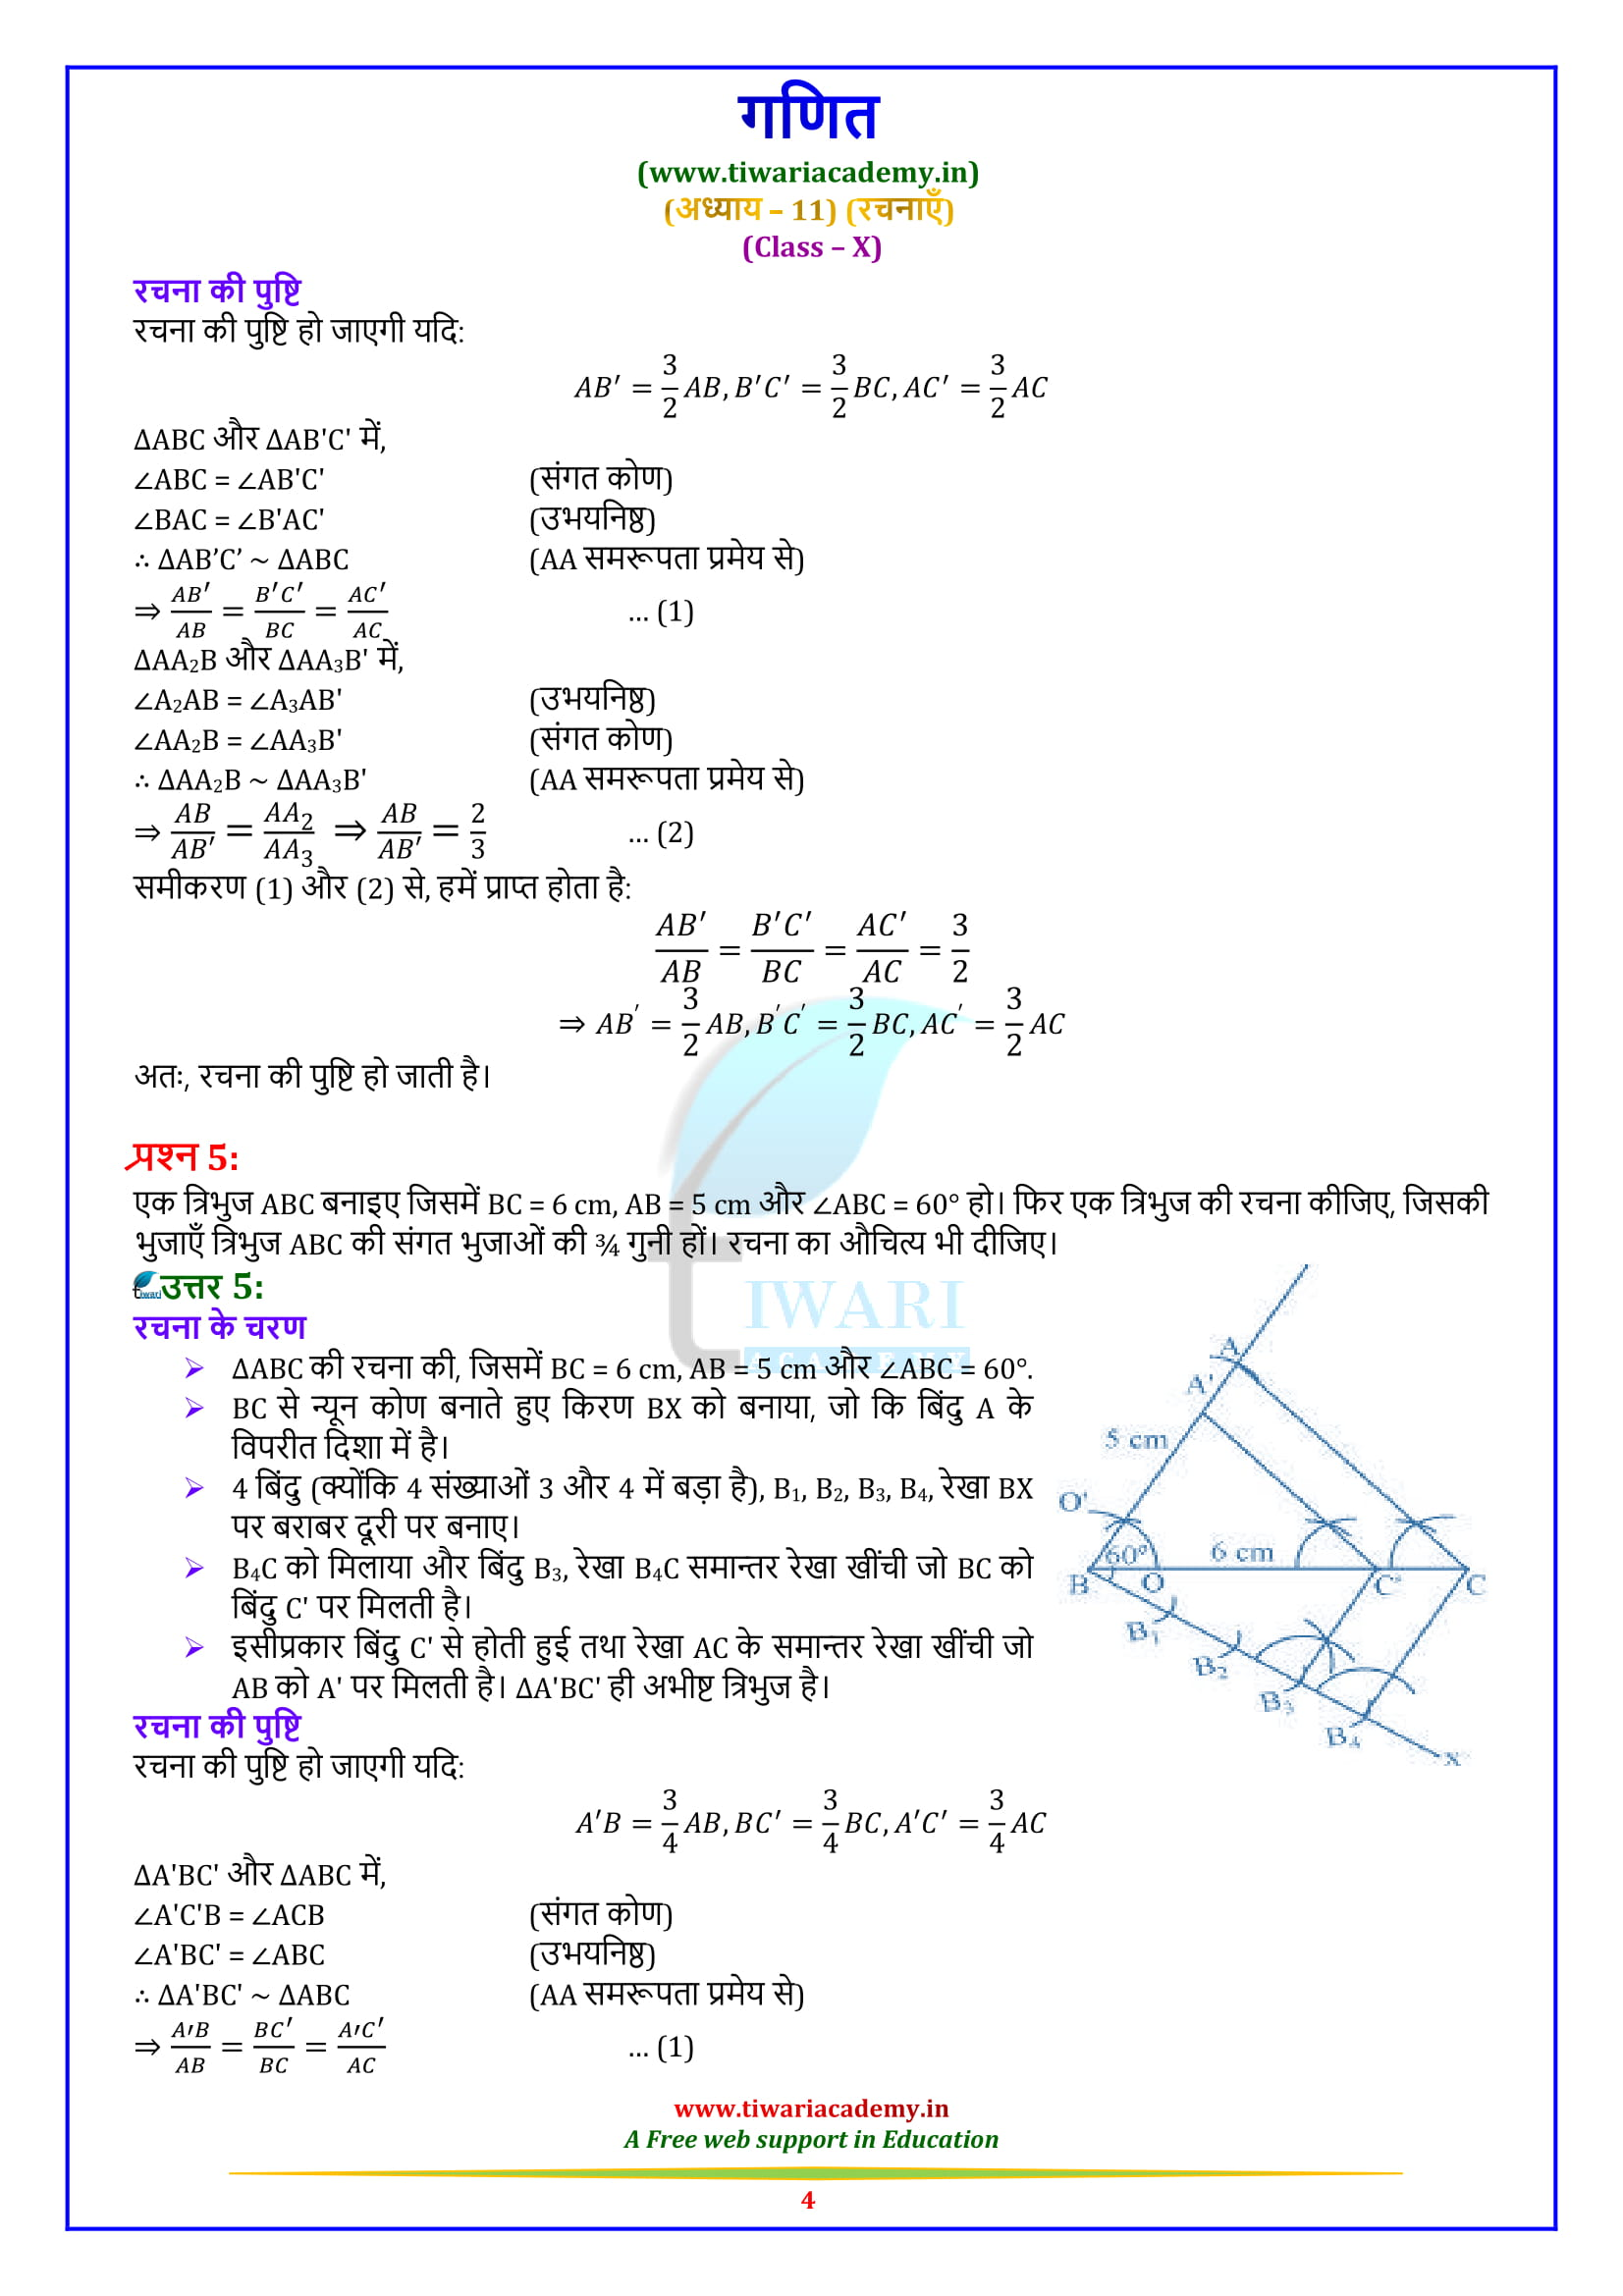 Class 10 Maths Exercise 11.1 solutions question 1, 2, 3, 4, 5, 6, 7